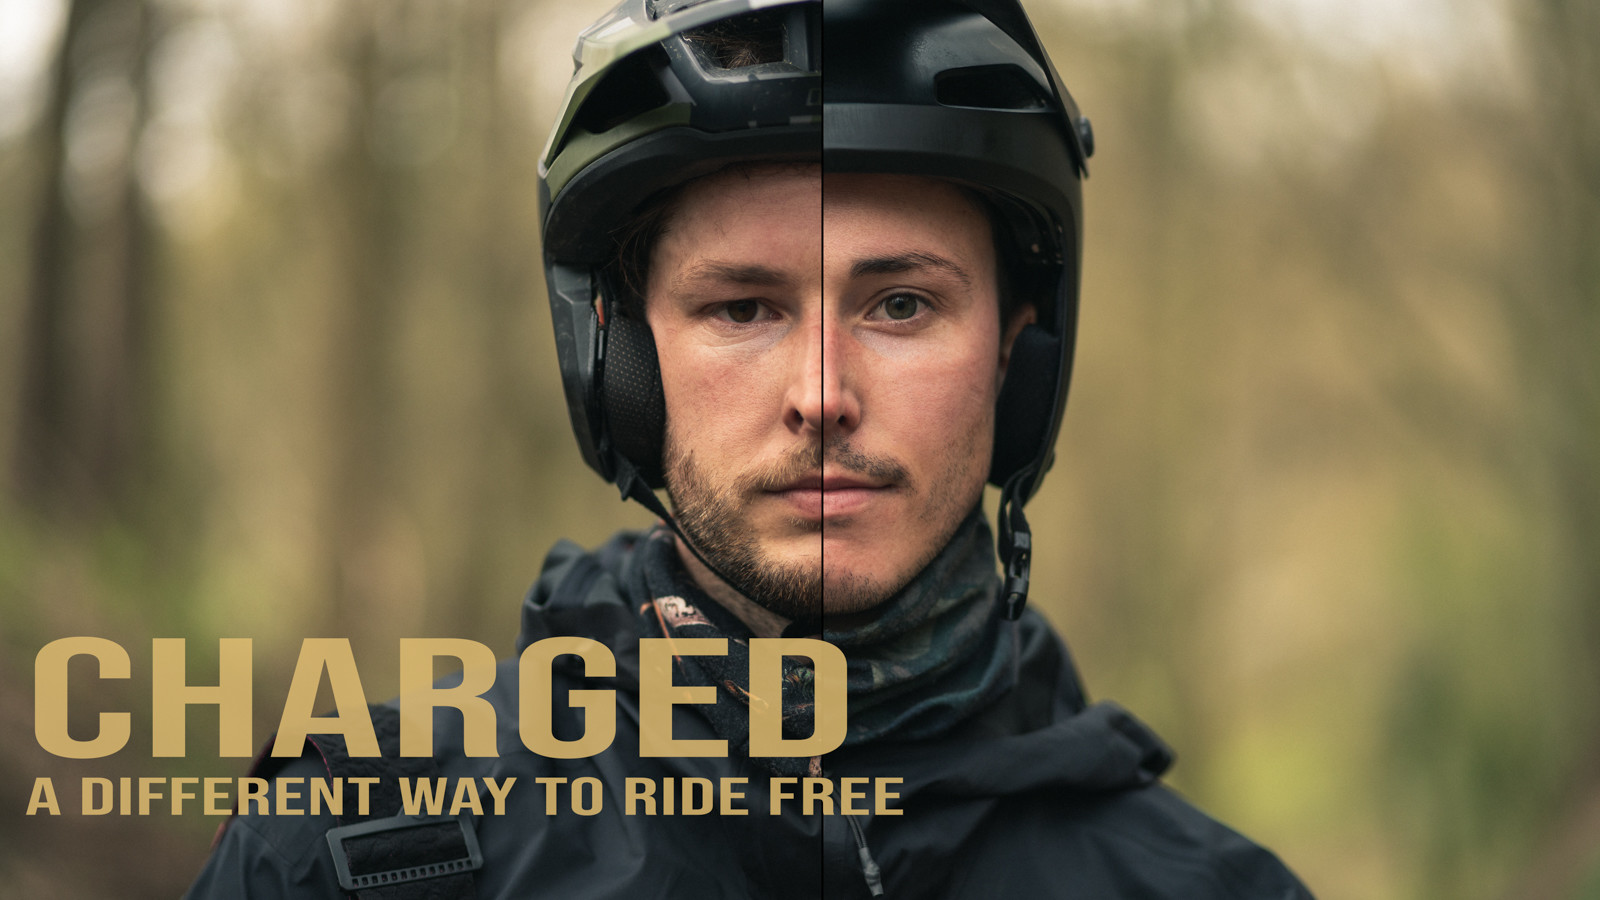 Charged: A Different Way To Ride Free